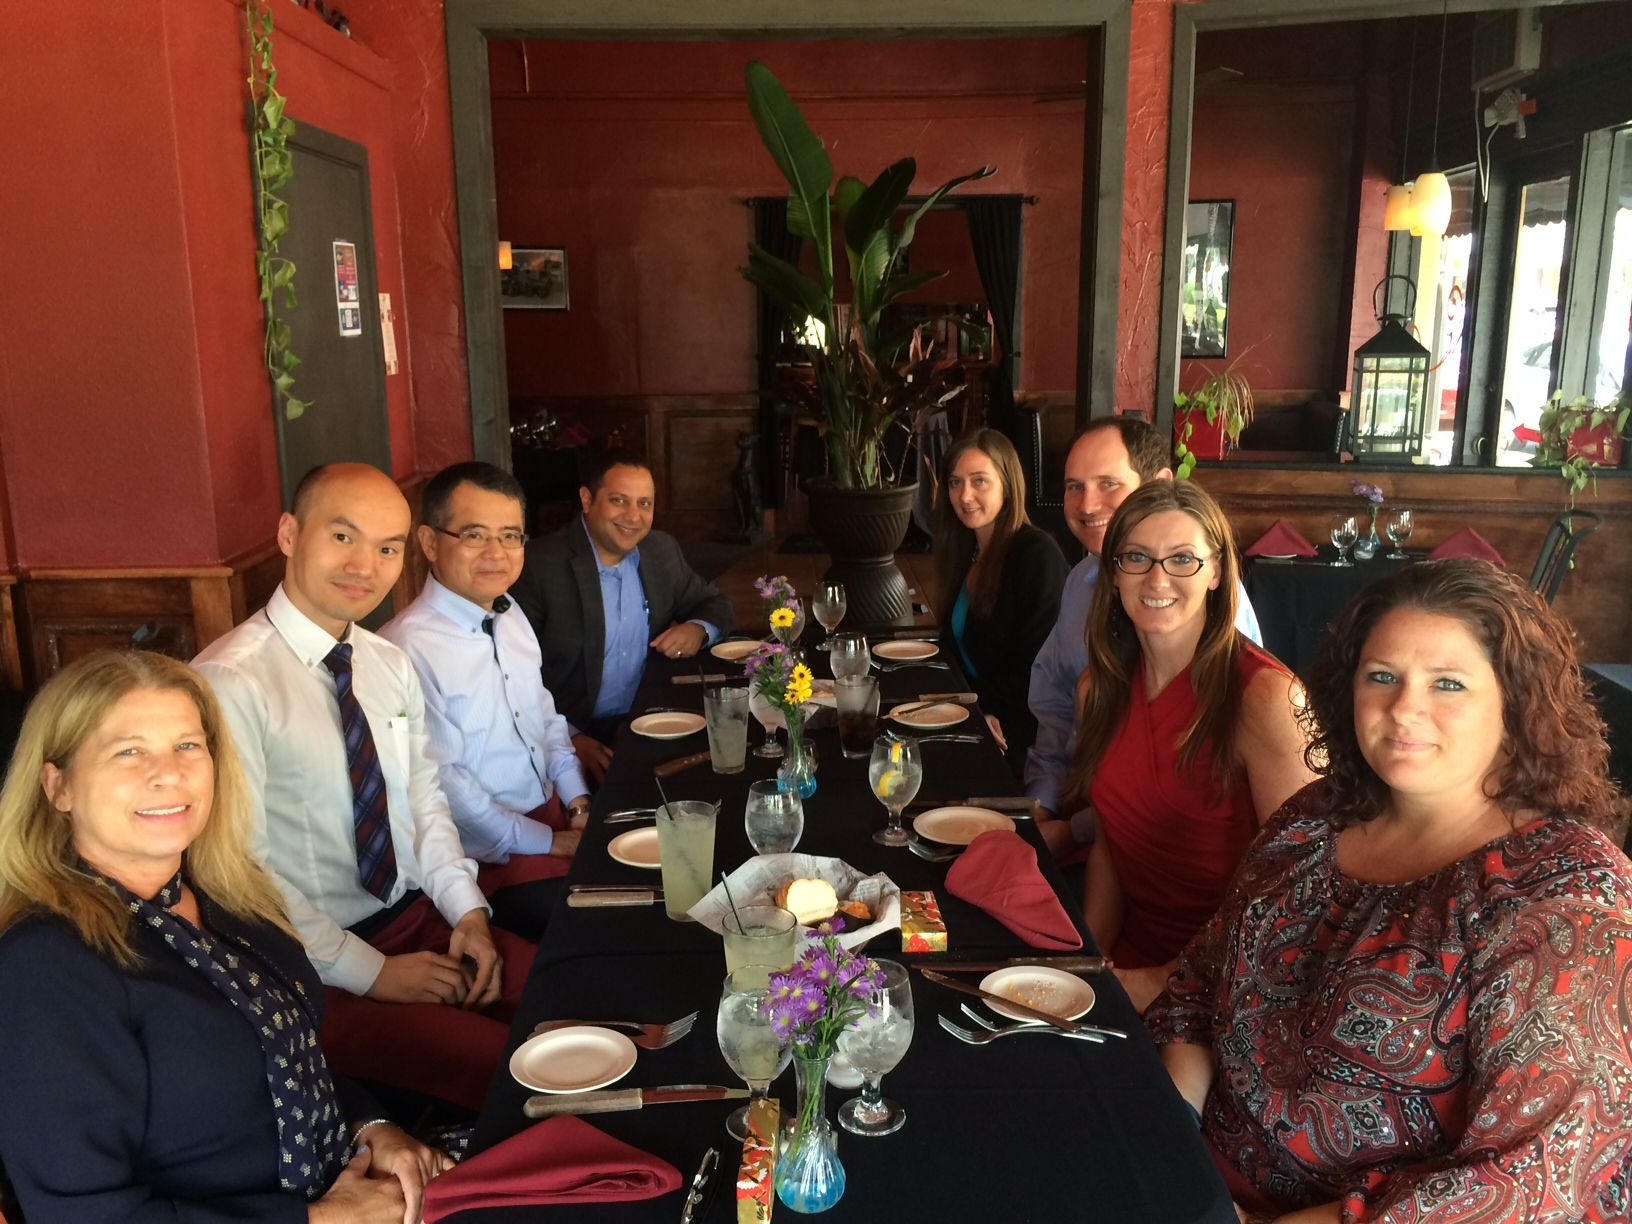 Widerman Malek Attorneys and Staff enjoy Lunch at The Firehouse Restaurant with Shiga International Japanese Patent Attorneys